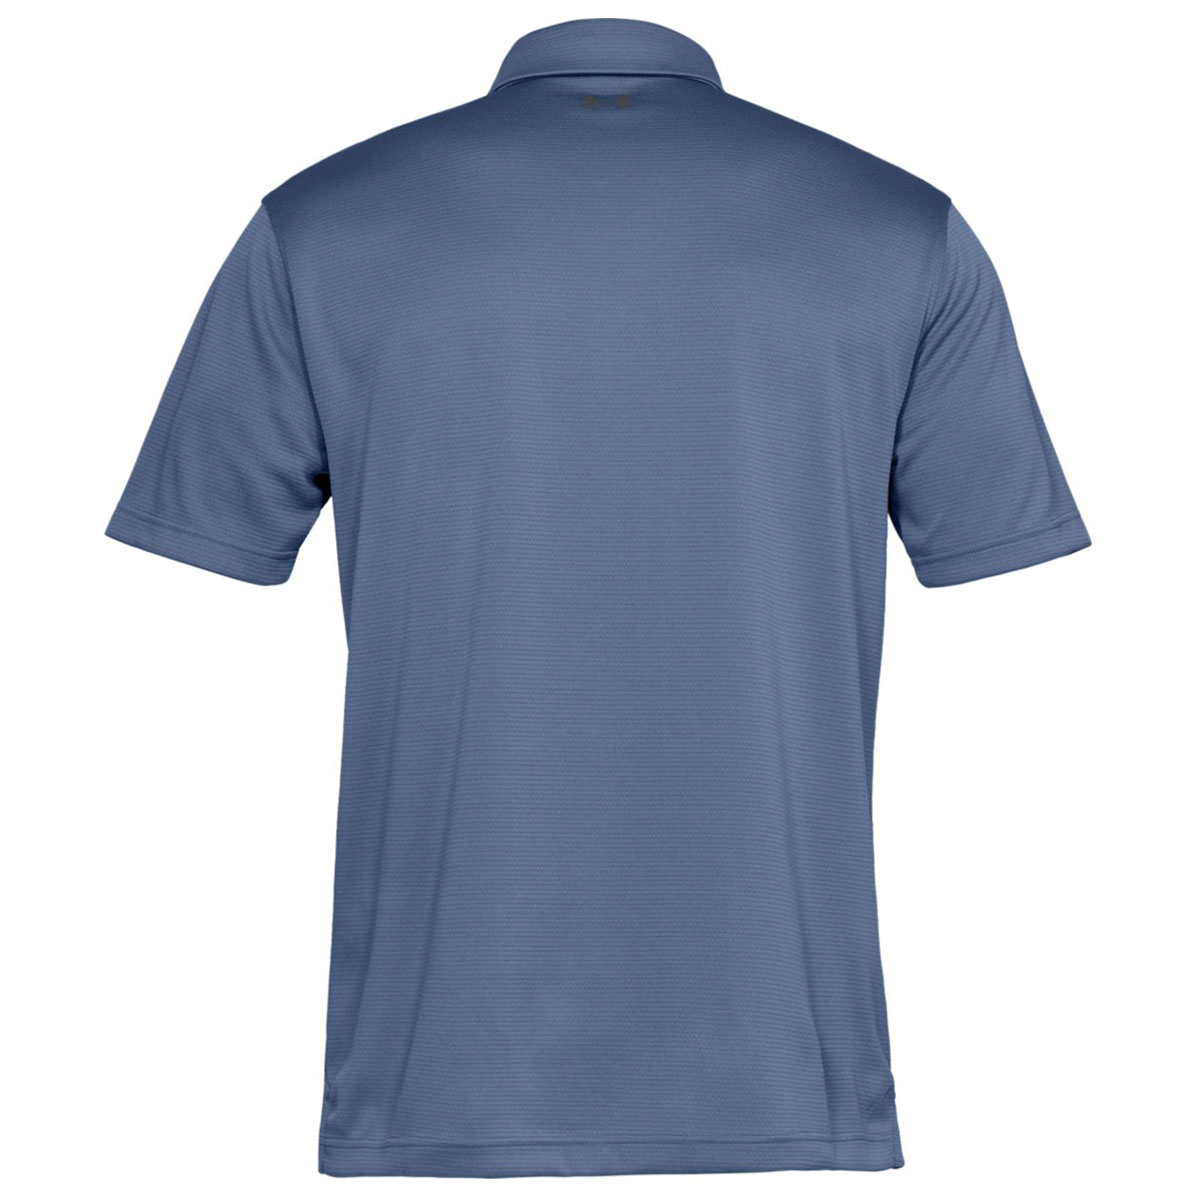 Under-Armour-Mens-Golf-Tech-Wicking-Textured-Soft-Light-Polo-Shirt thumbnail 83